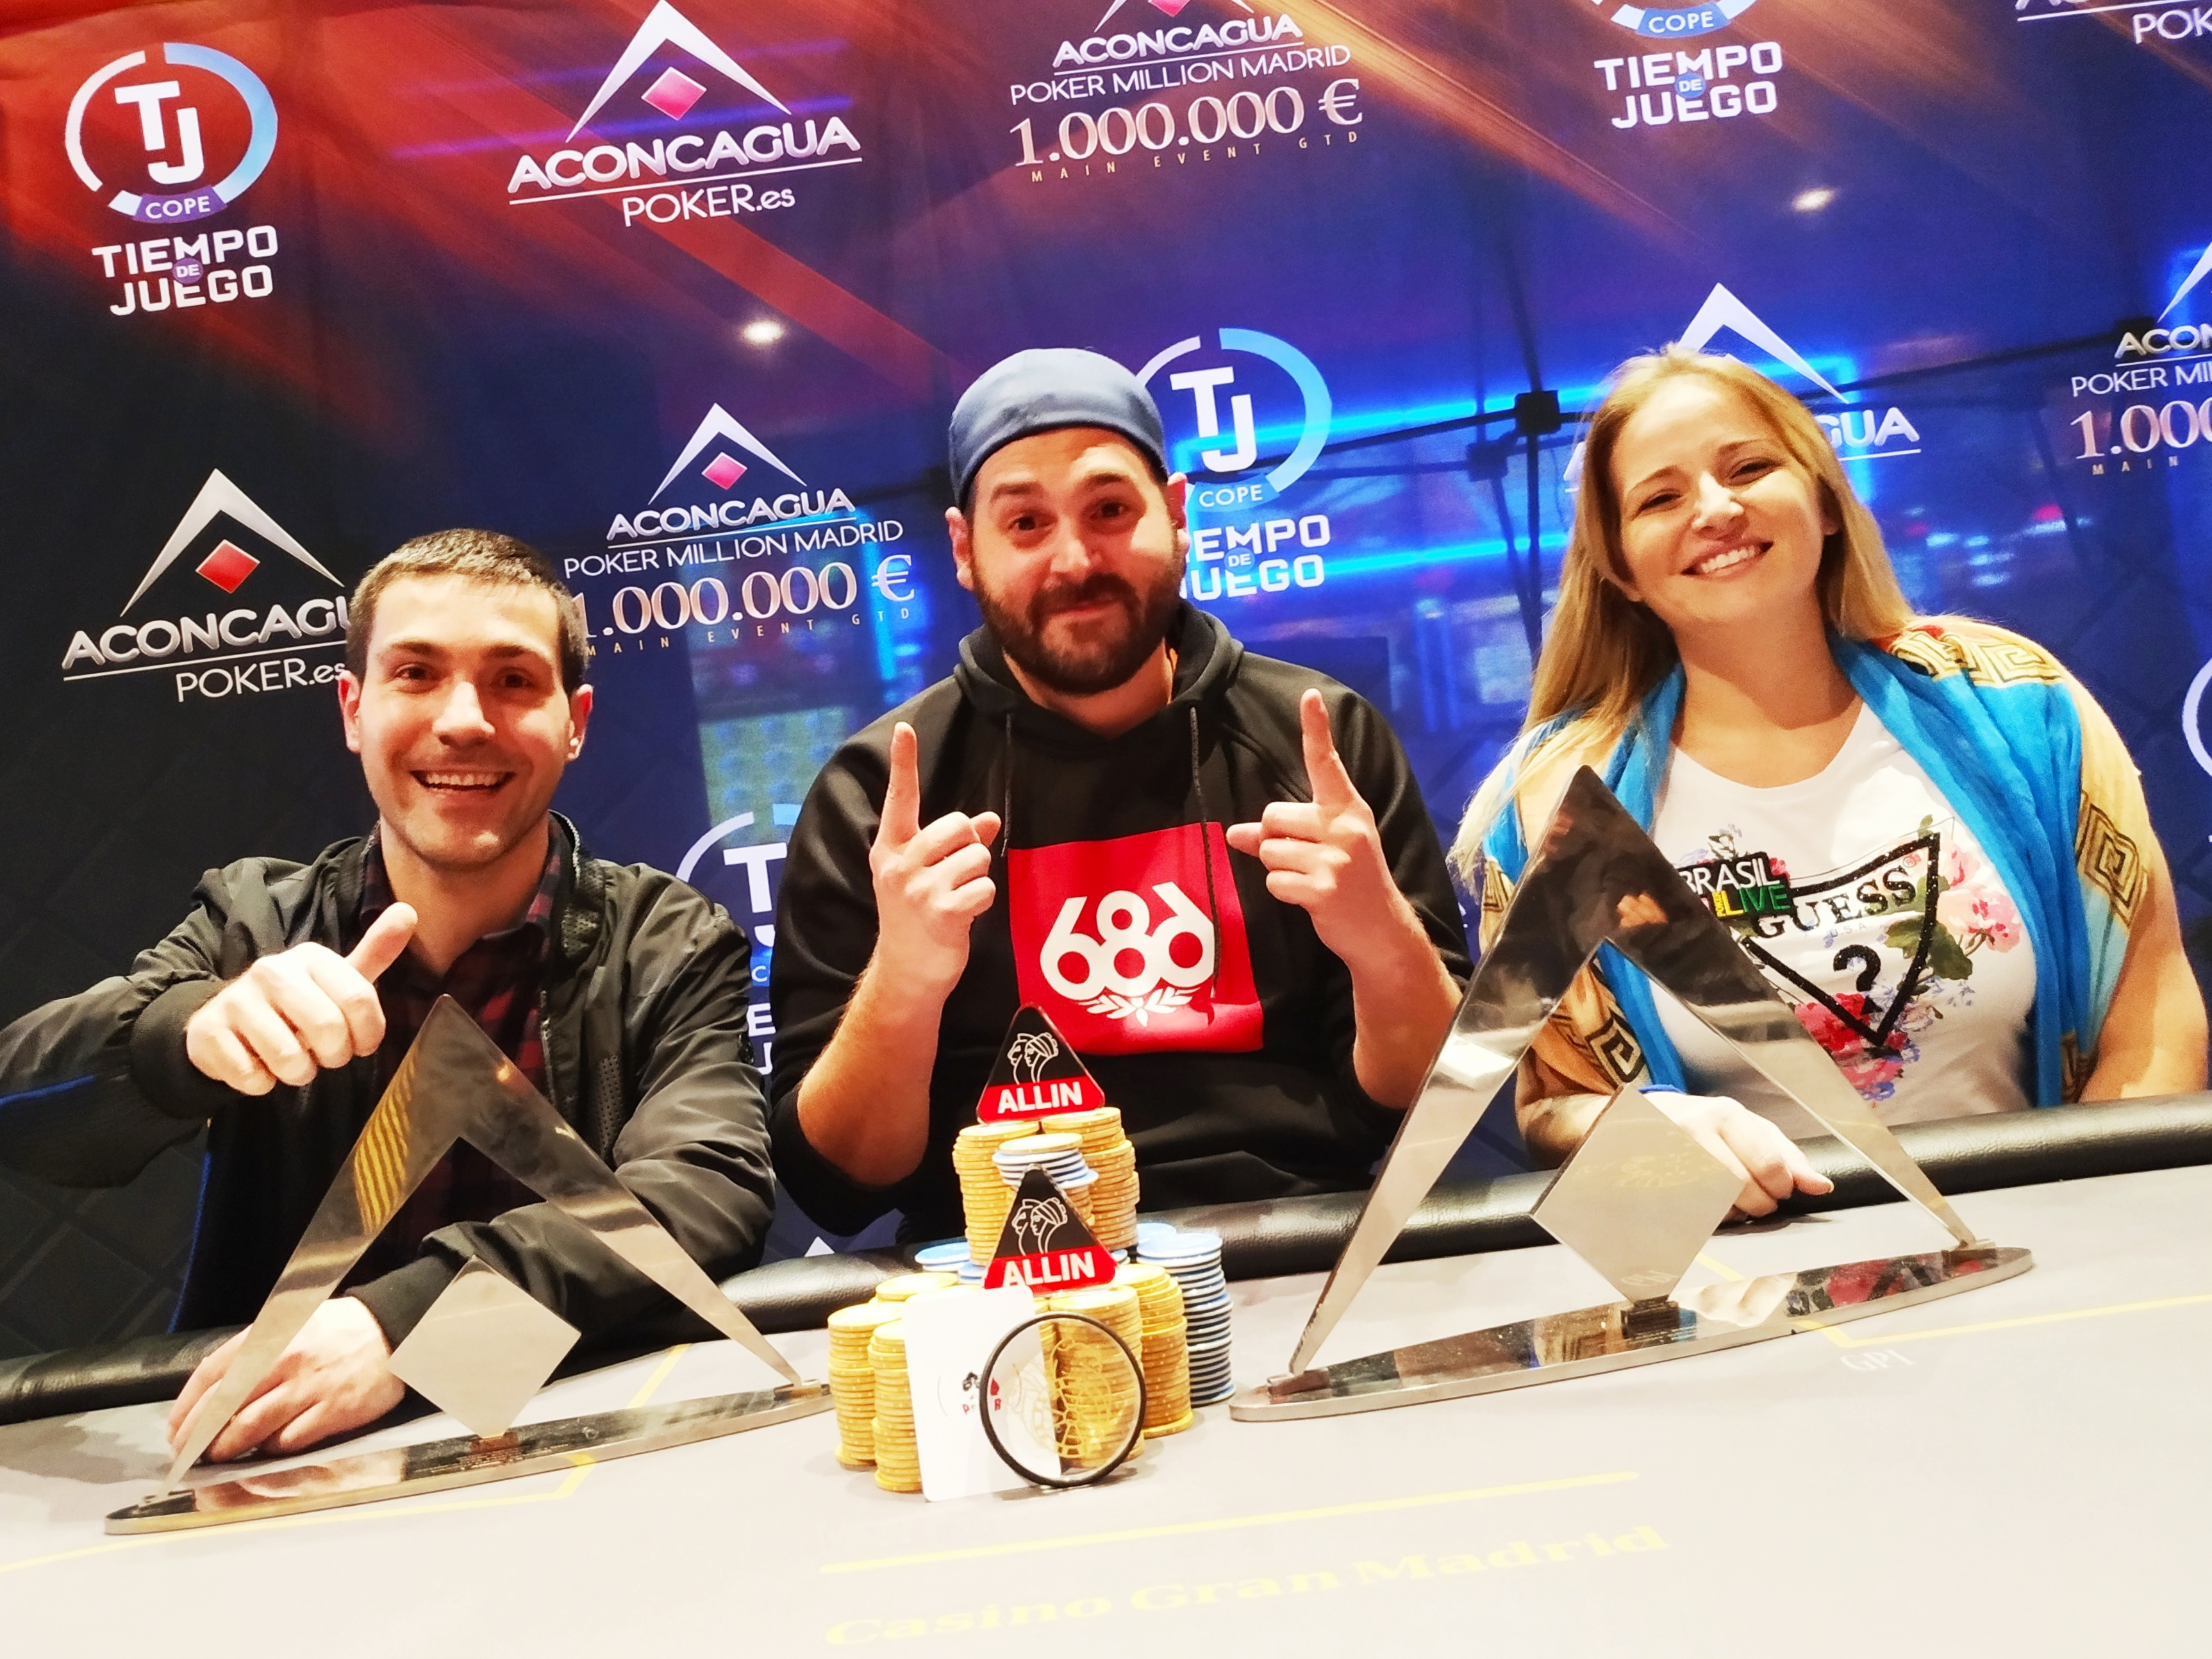 Pódio do Main Event do Aconcagua Million Madrid